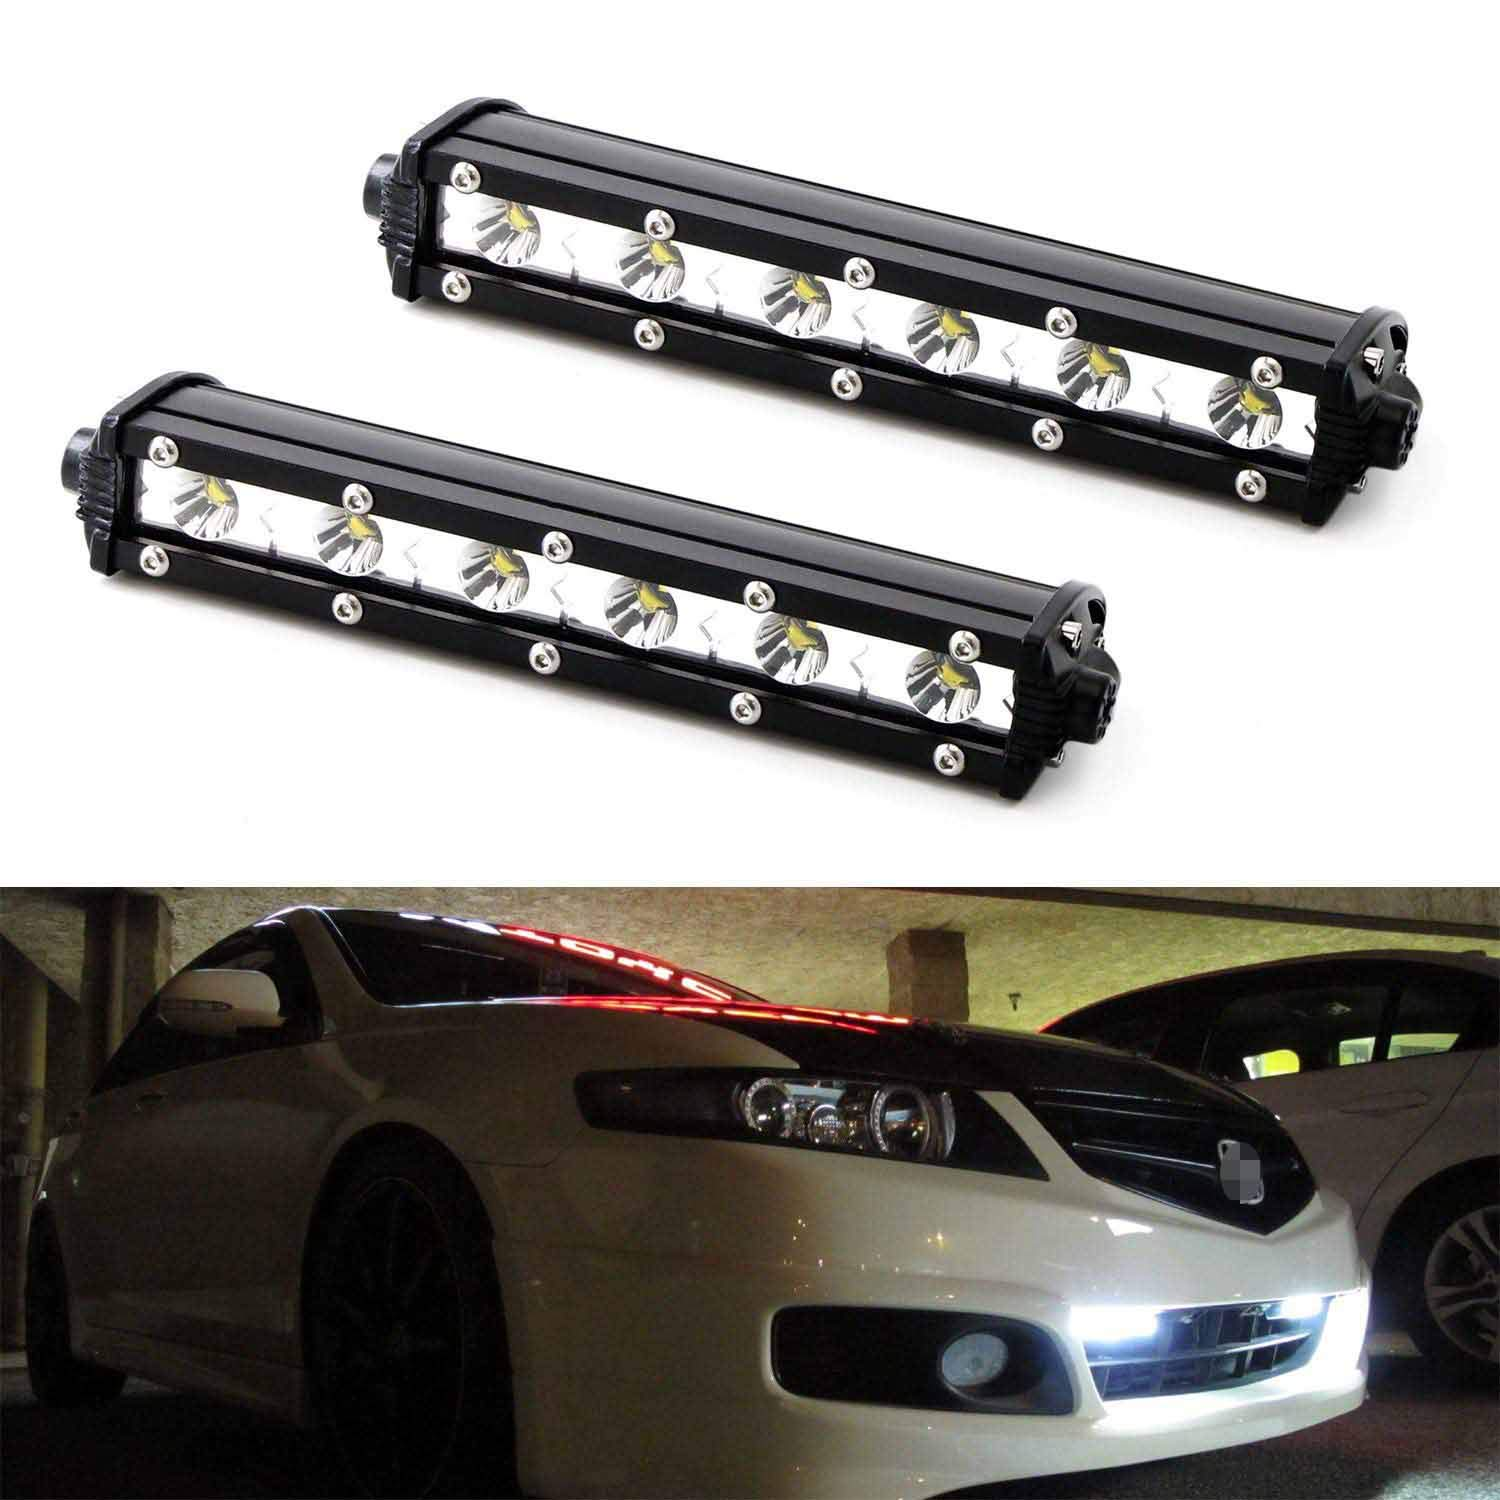 iJDMTOY (2) Xenon White 18W High Power CREE LED Daytime Running Light Kit w/Relay Wire Harness, Universal Fit Compatible With Car, Truck, SUV, etc